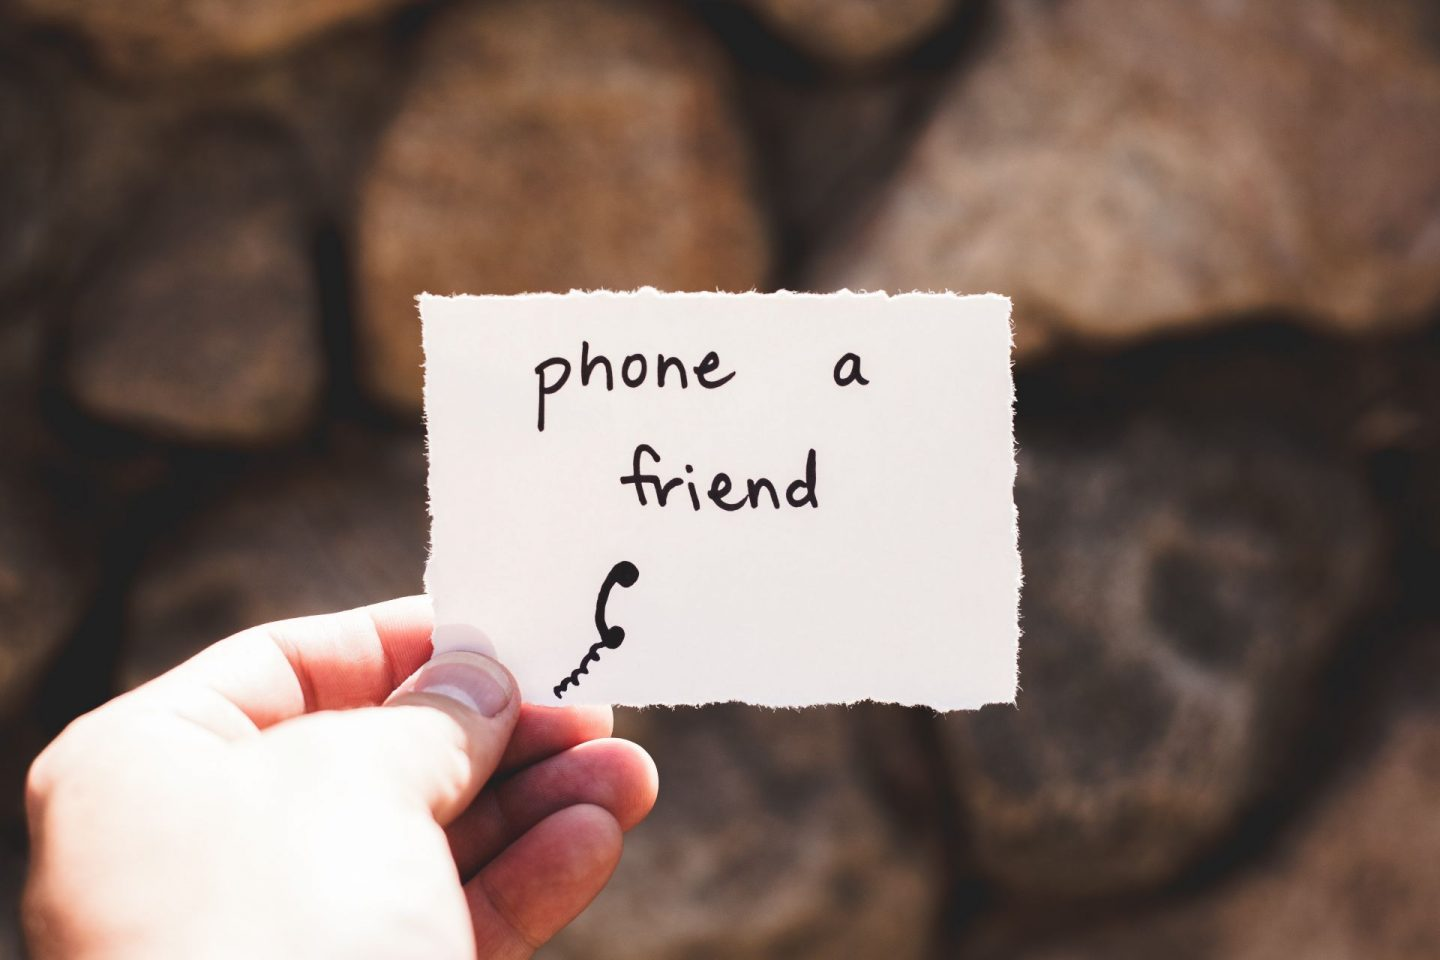 mental health during coronavirus - a hand holding a small piece of paper with 'phone a friend' written on it